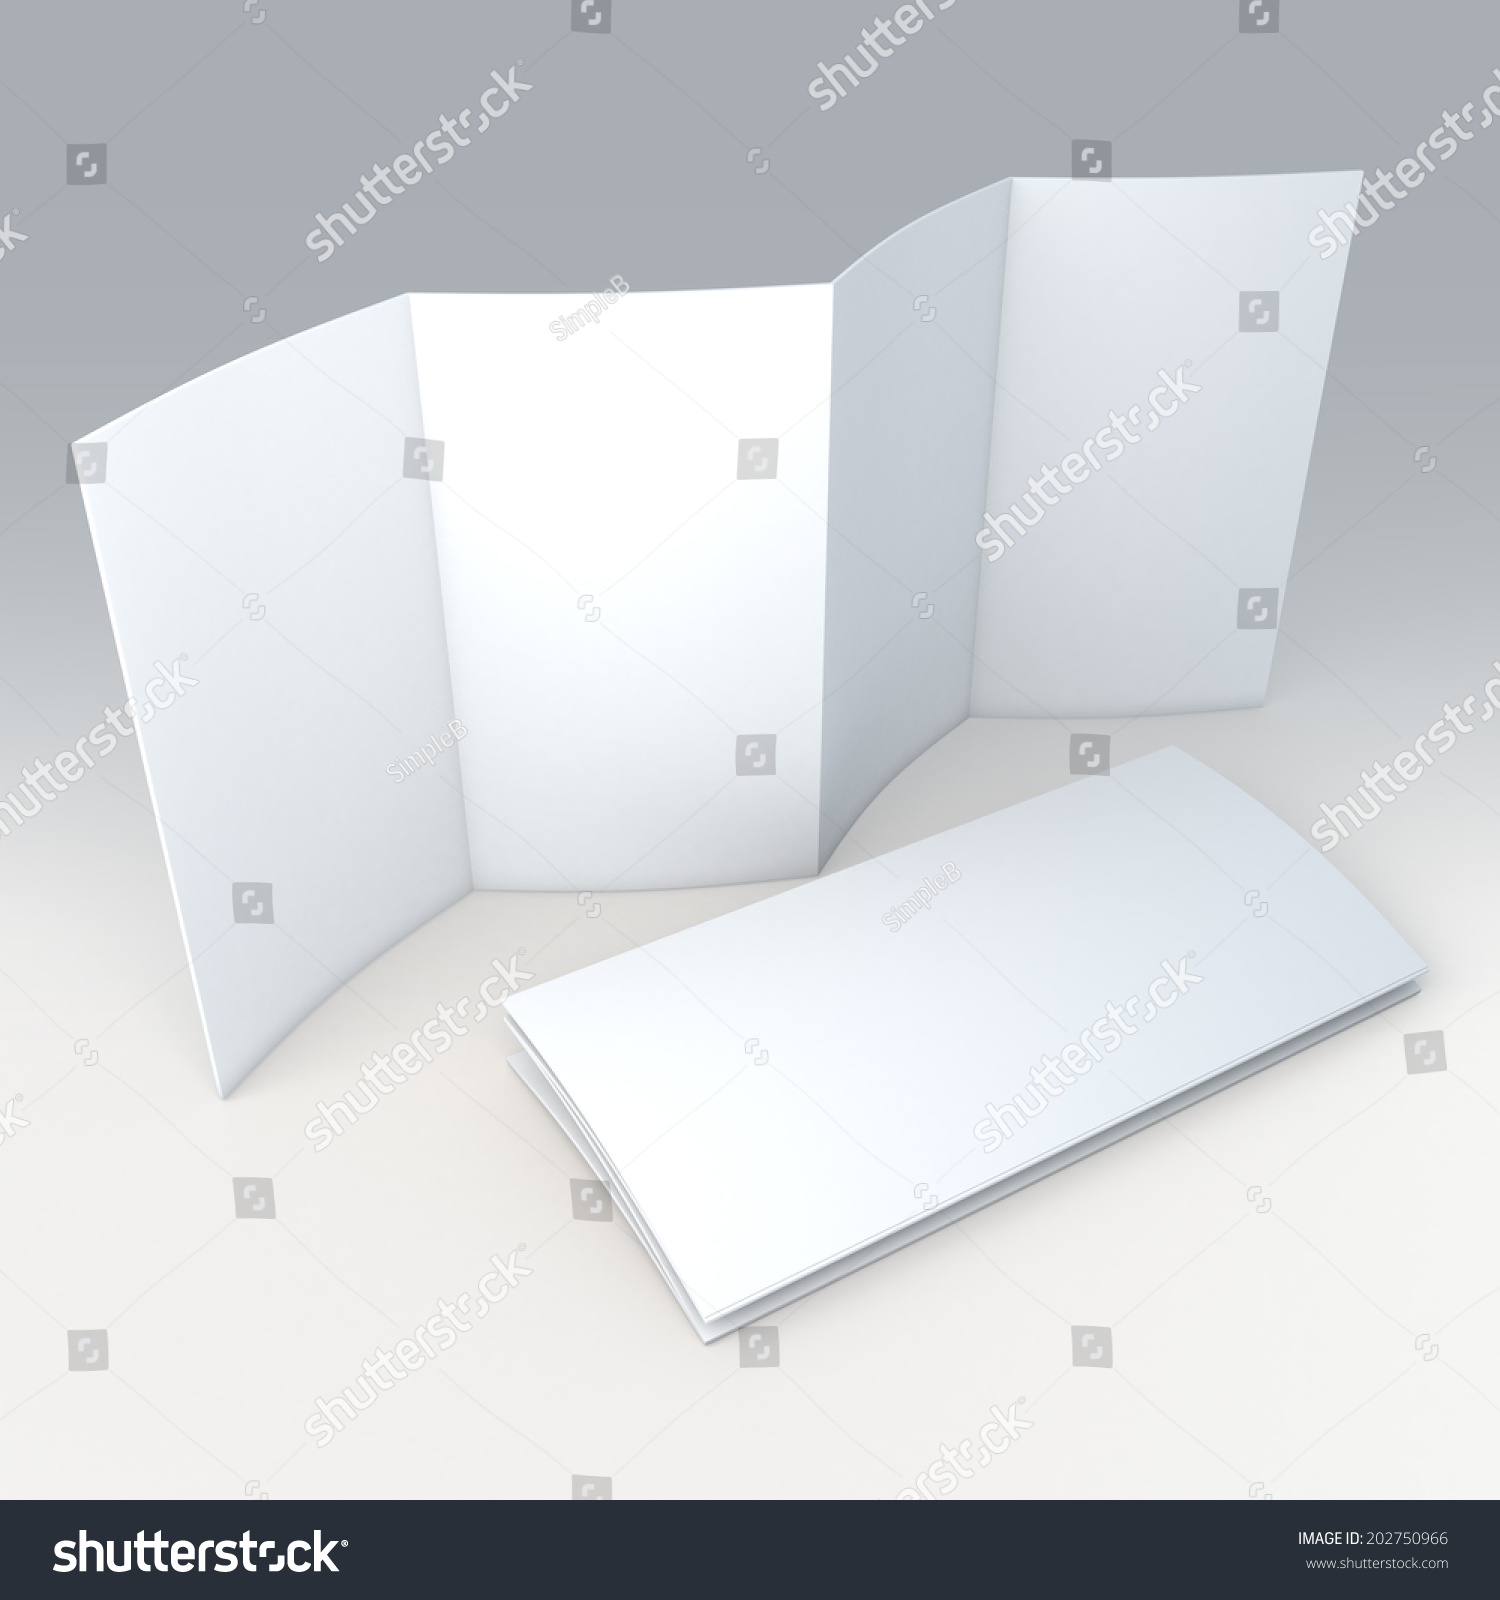 accordion fold brochure template - 3d clean white blank 8 pages stock illustration 202750966